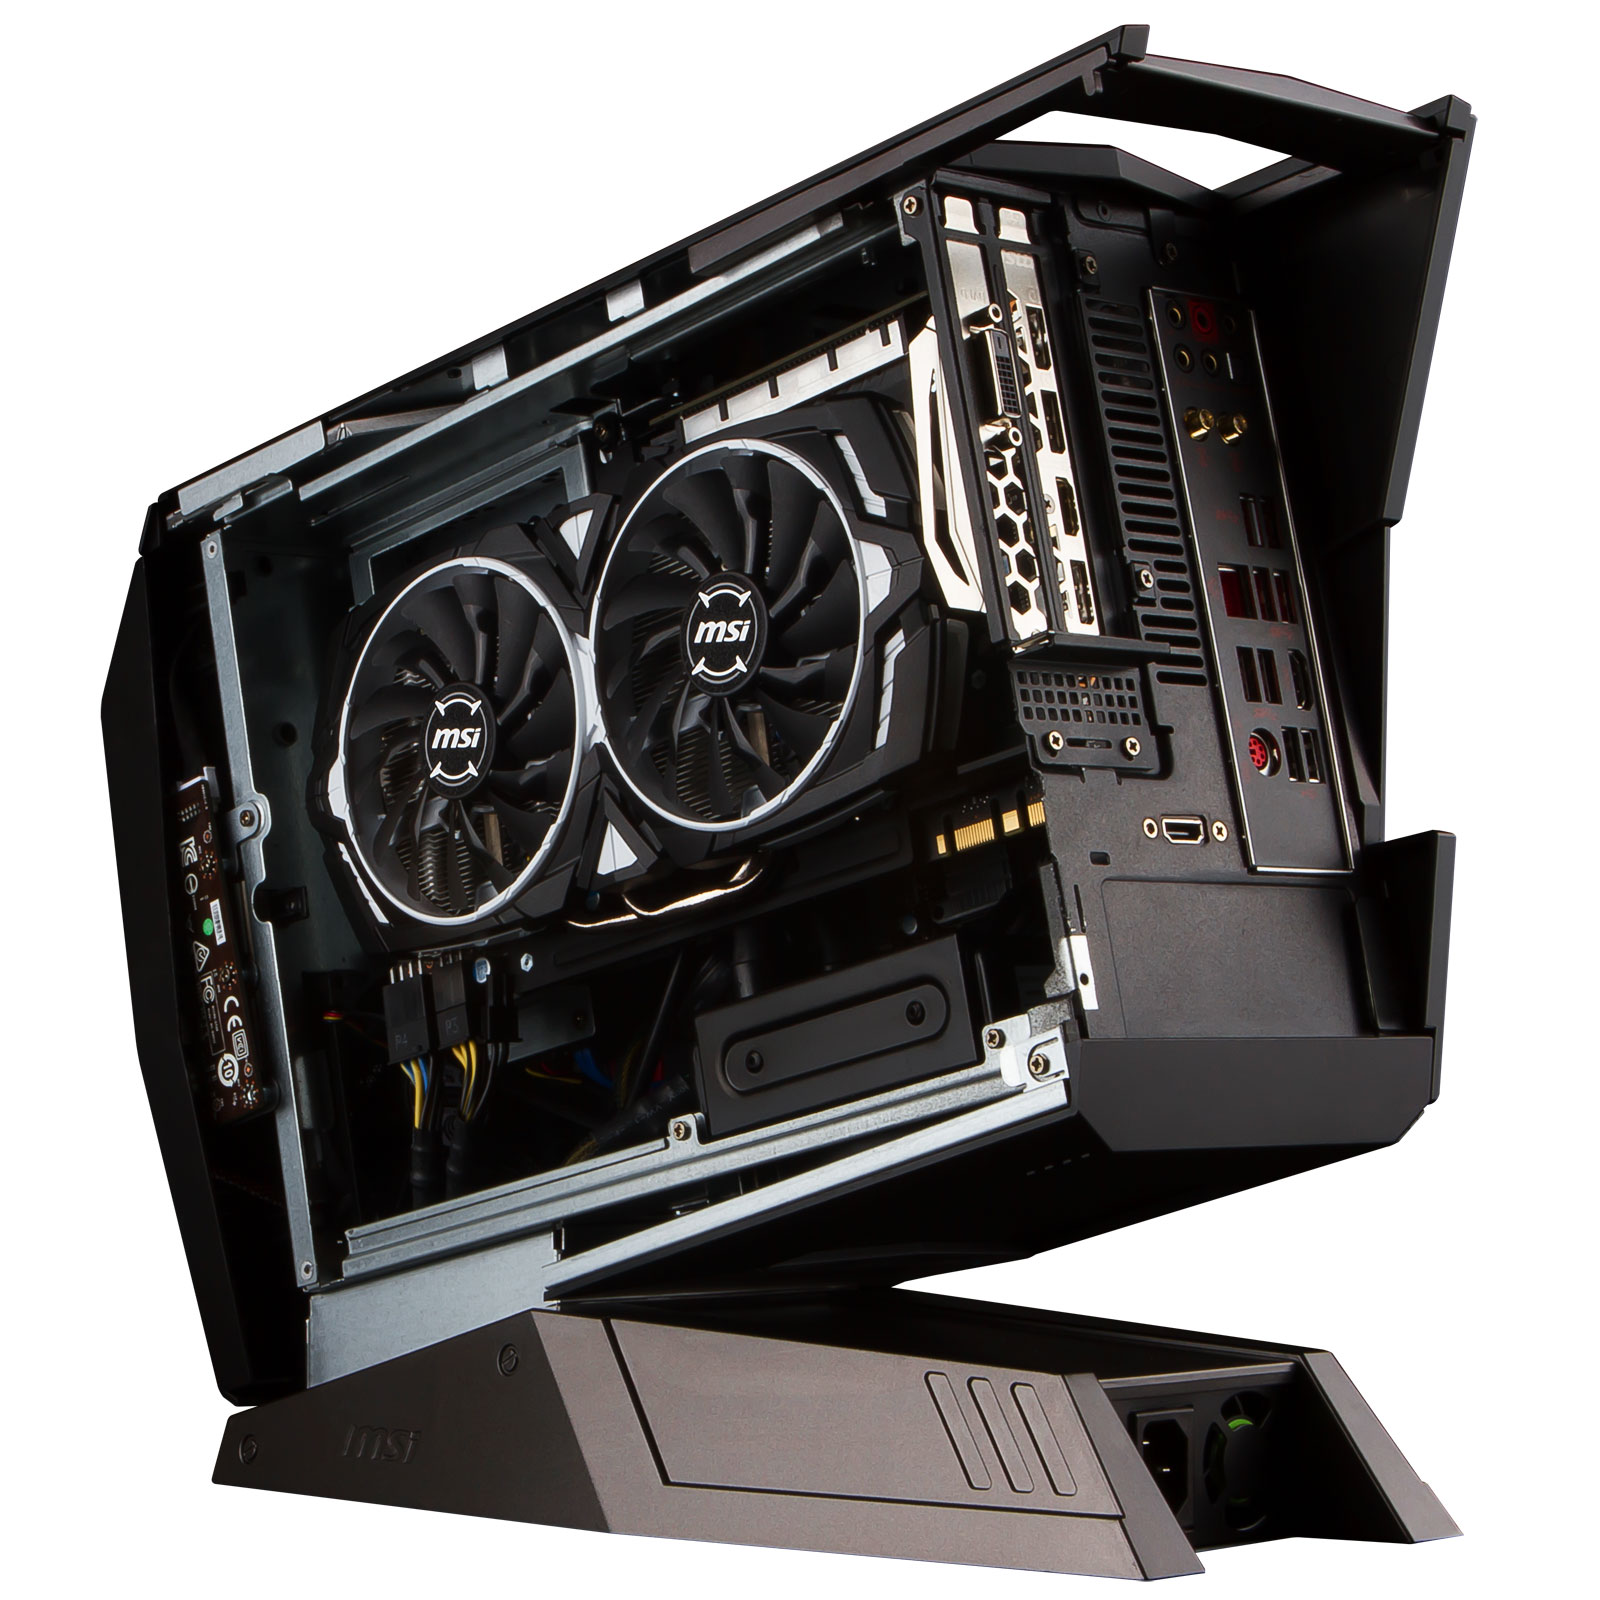 msi aegis x 002eu aegis x 002eu achat vente pc de bureau sur. Black Bedroom Furniture Sets. Home Design Ideas